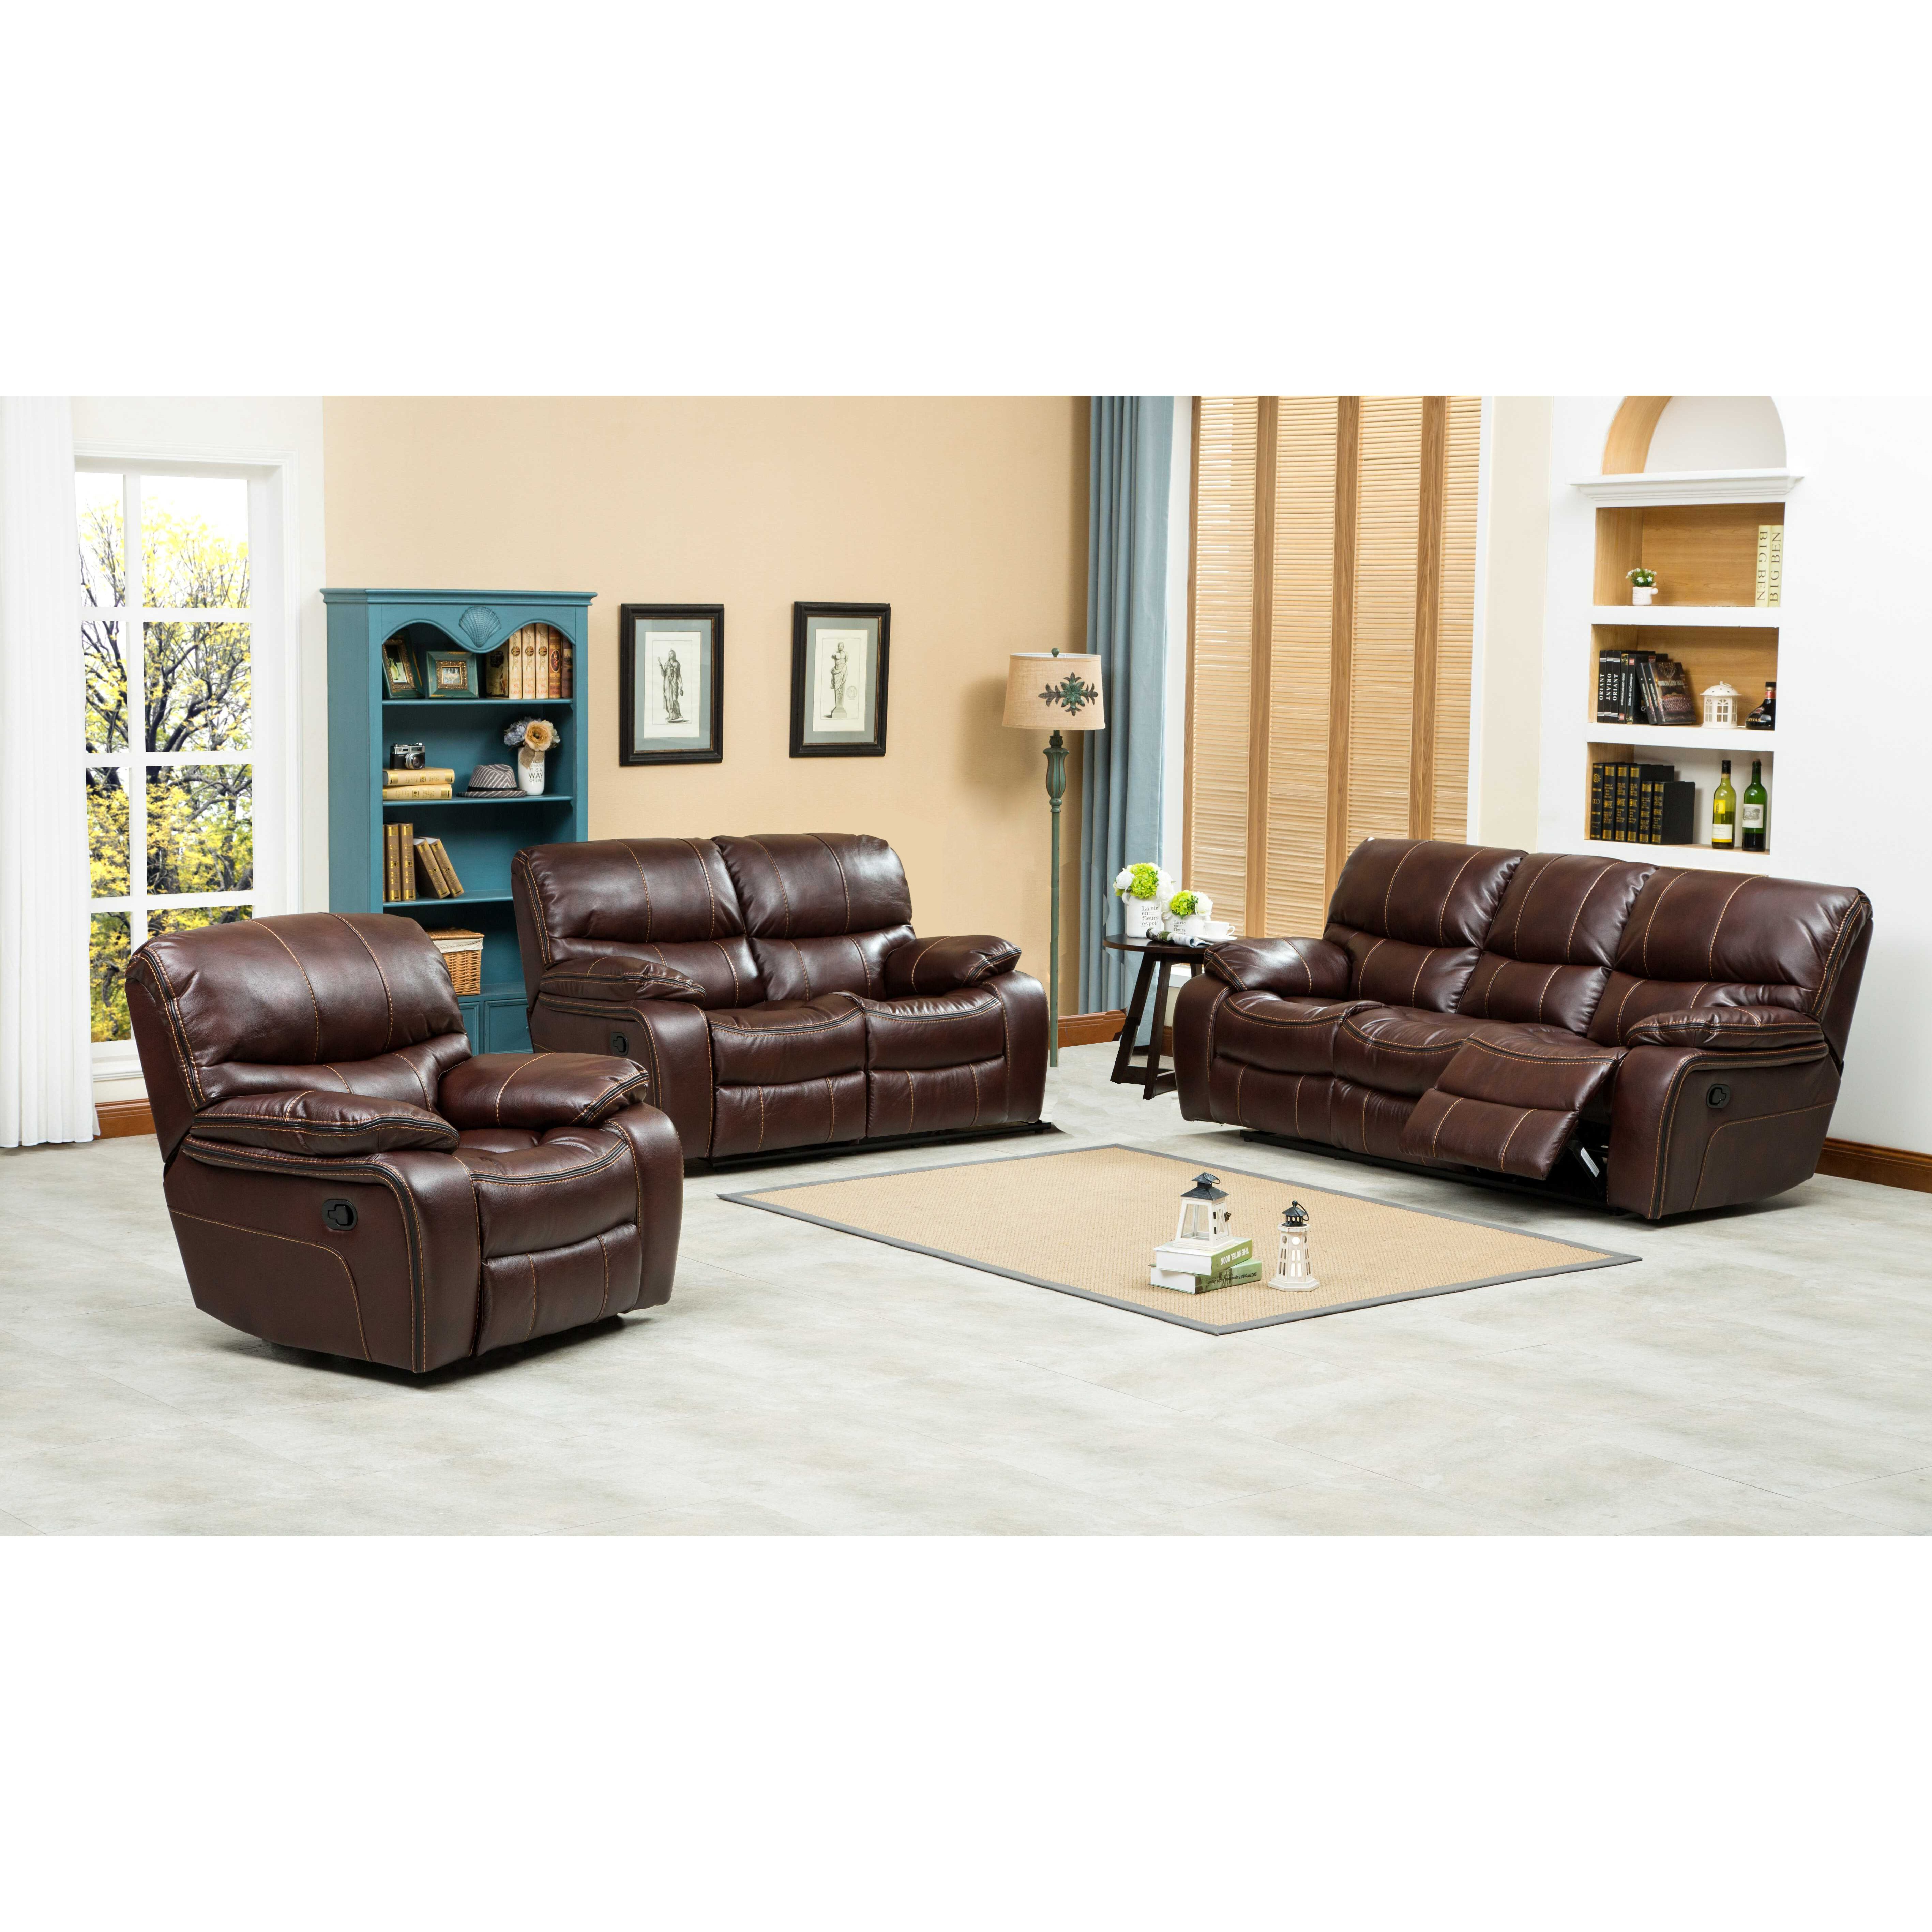 Roundhill Furniture Ewa 3 Piece Reclining Leather Living